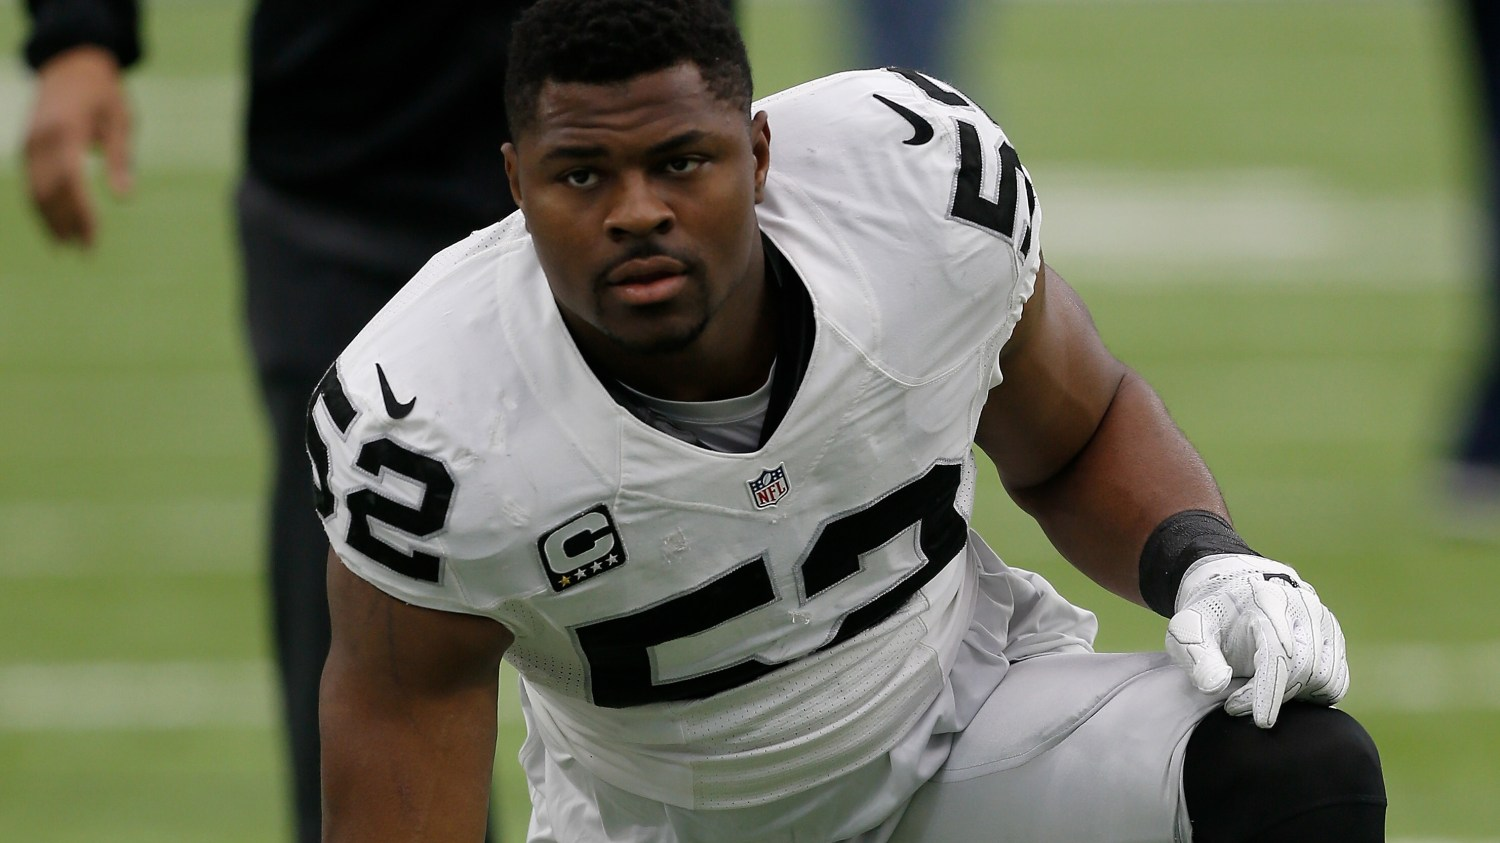 Raiders' Khalil Mack: 'I can get a whole lot better' — The ...